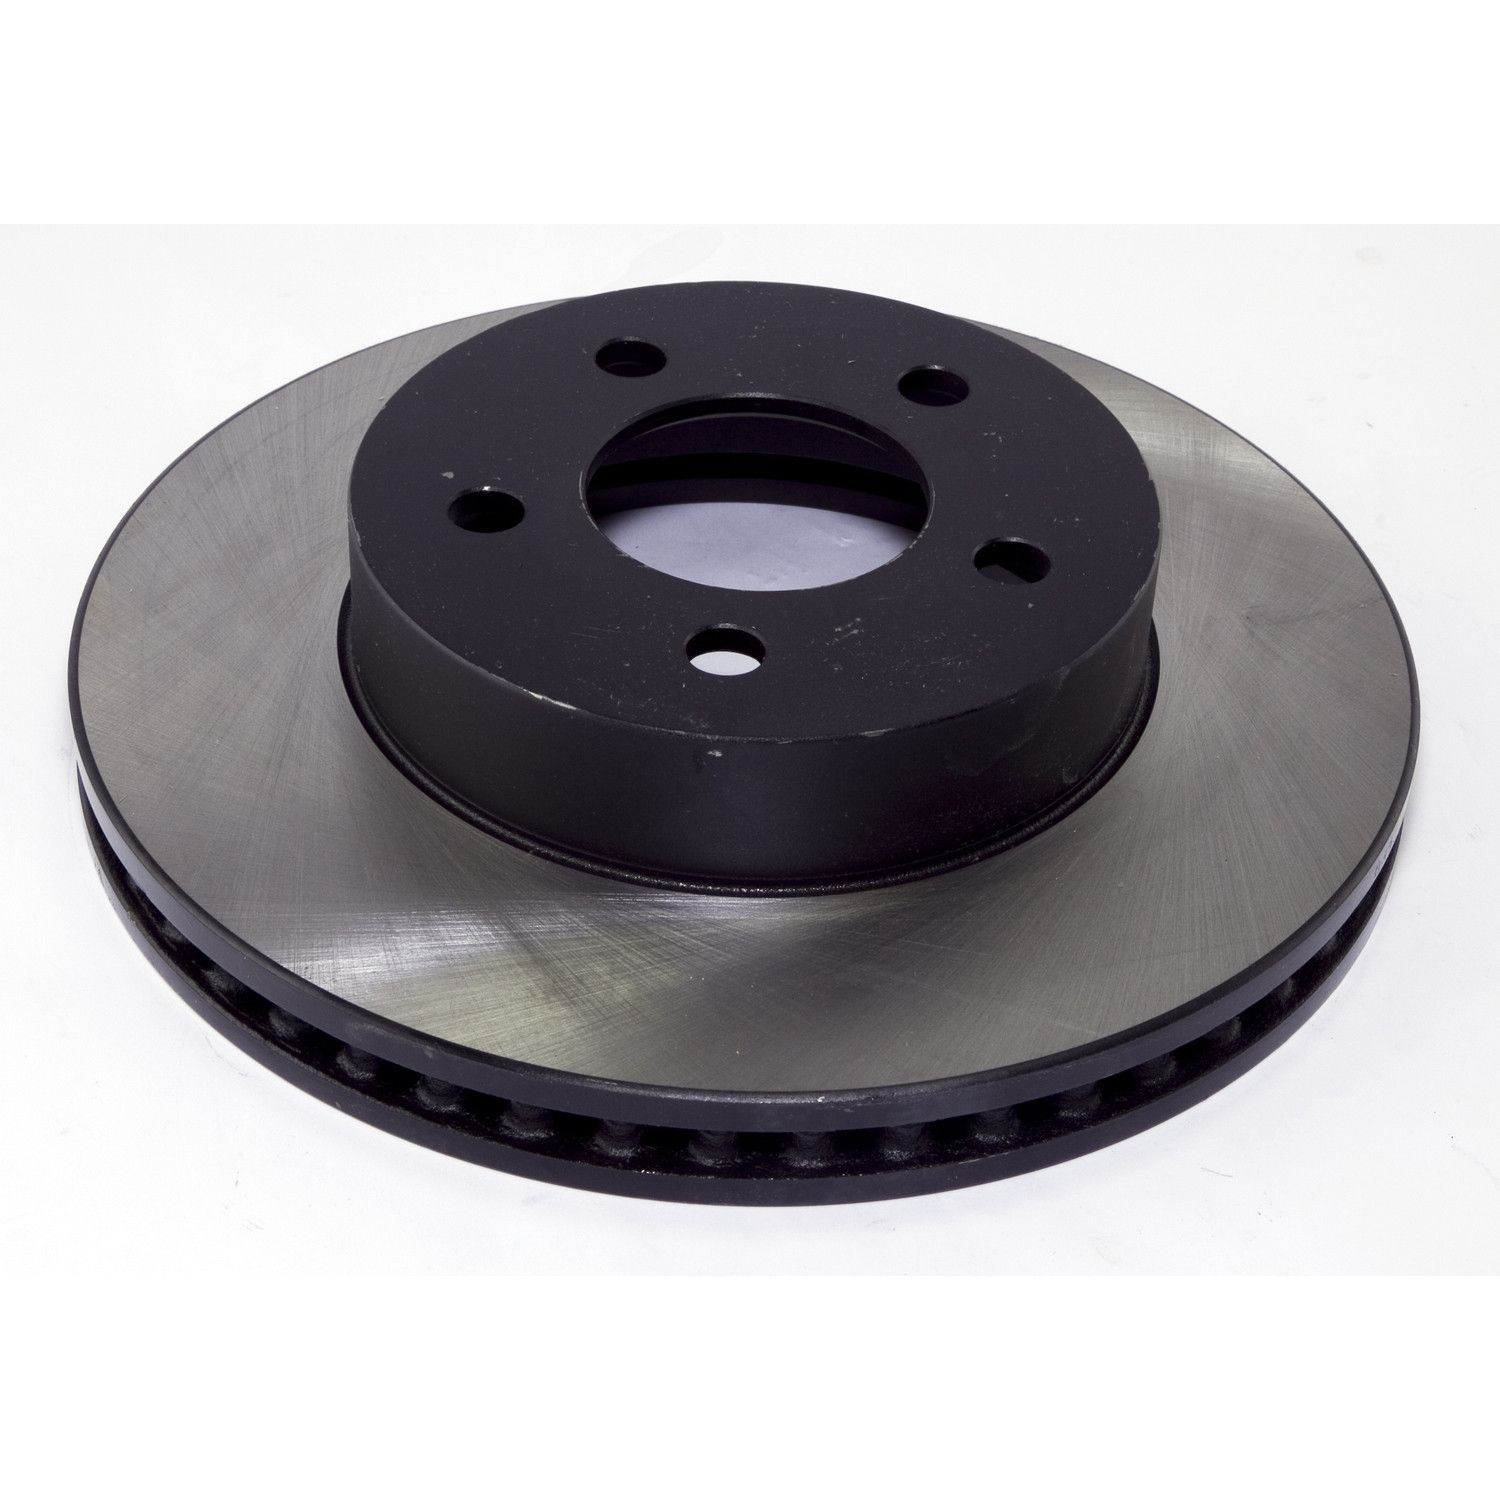 Buy front brake rotor 02 07 jeep liberty kj at get4x4parts com for only 58 63